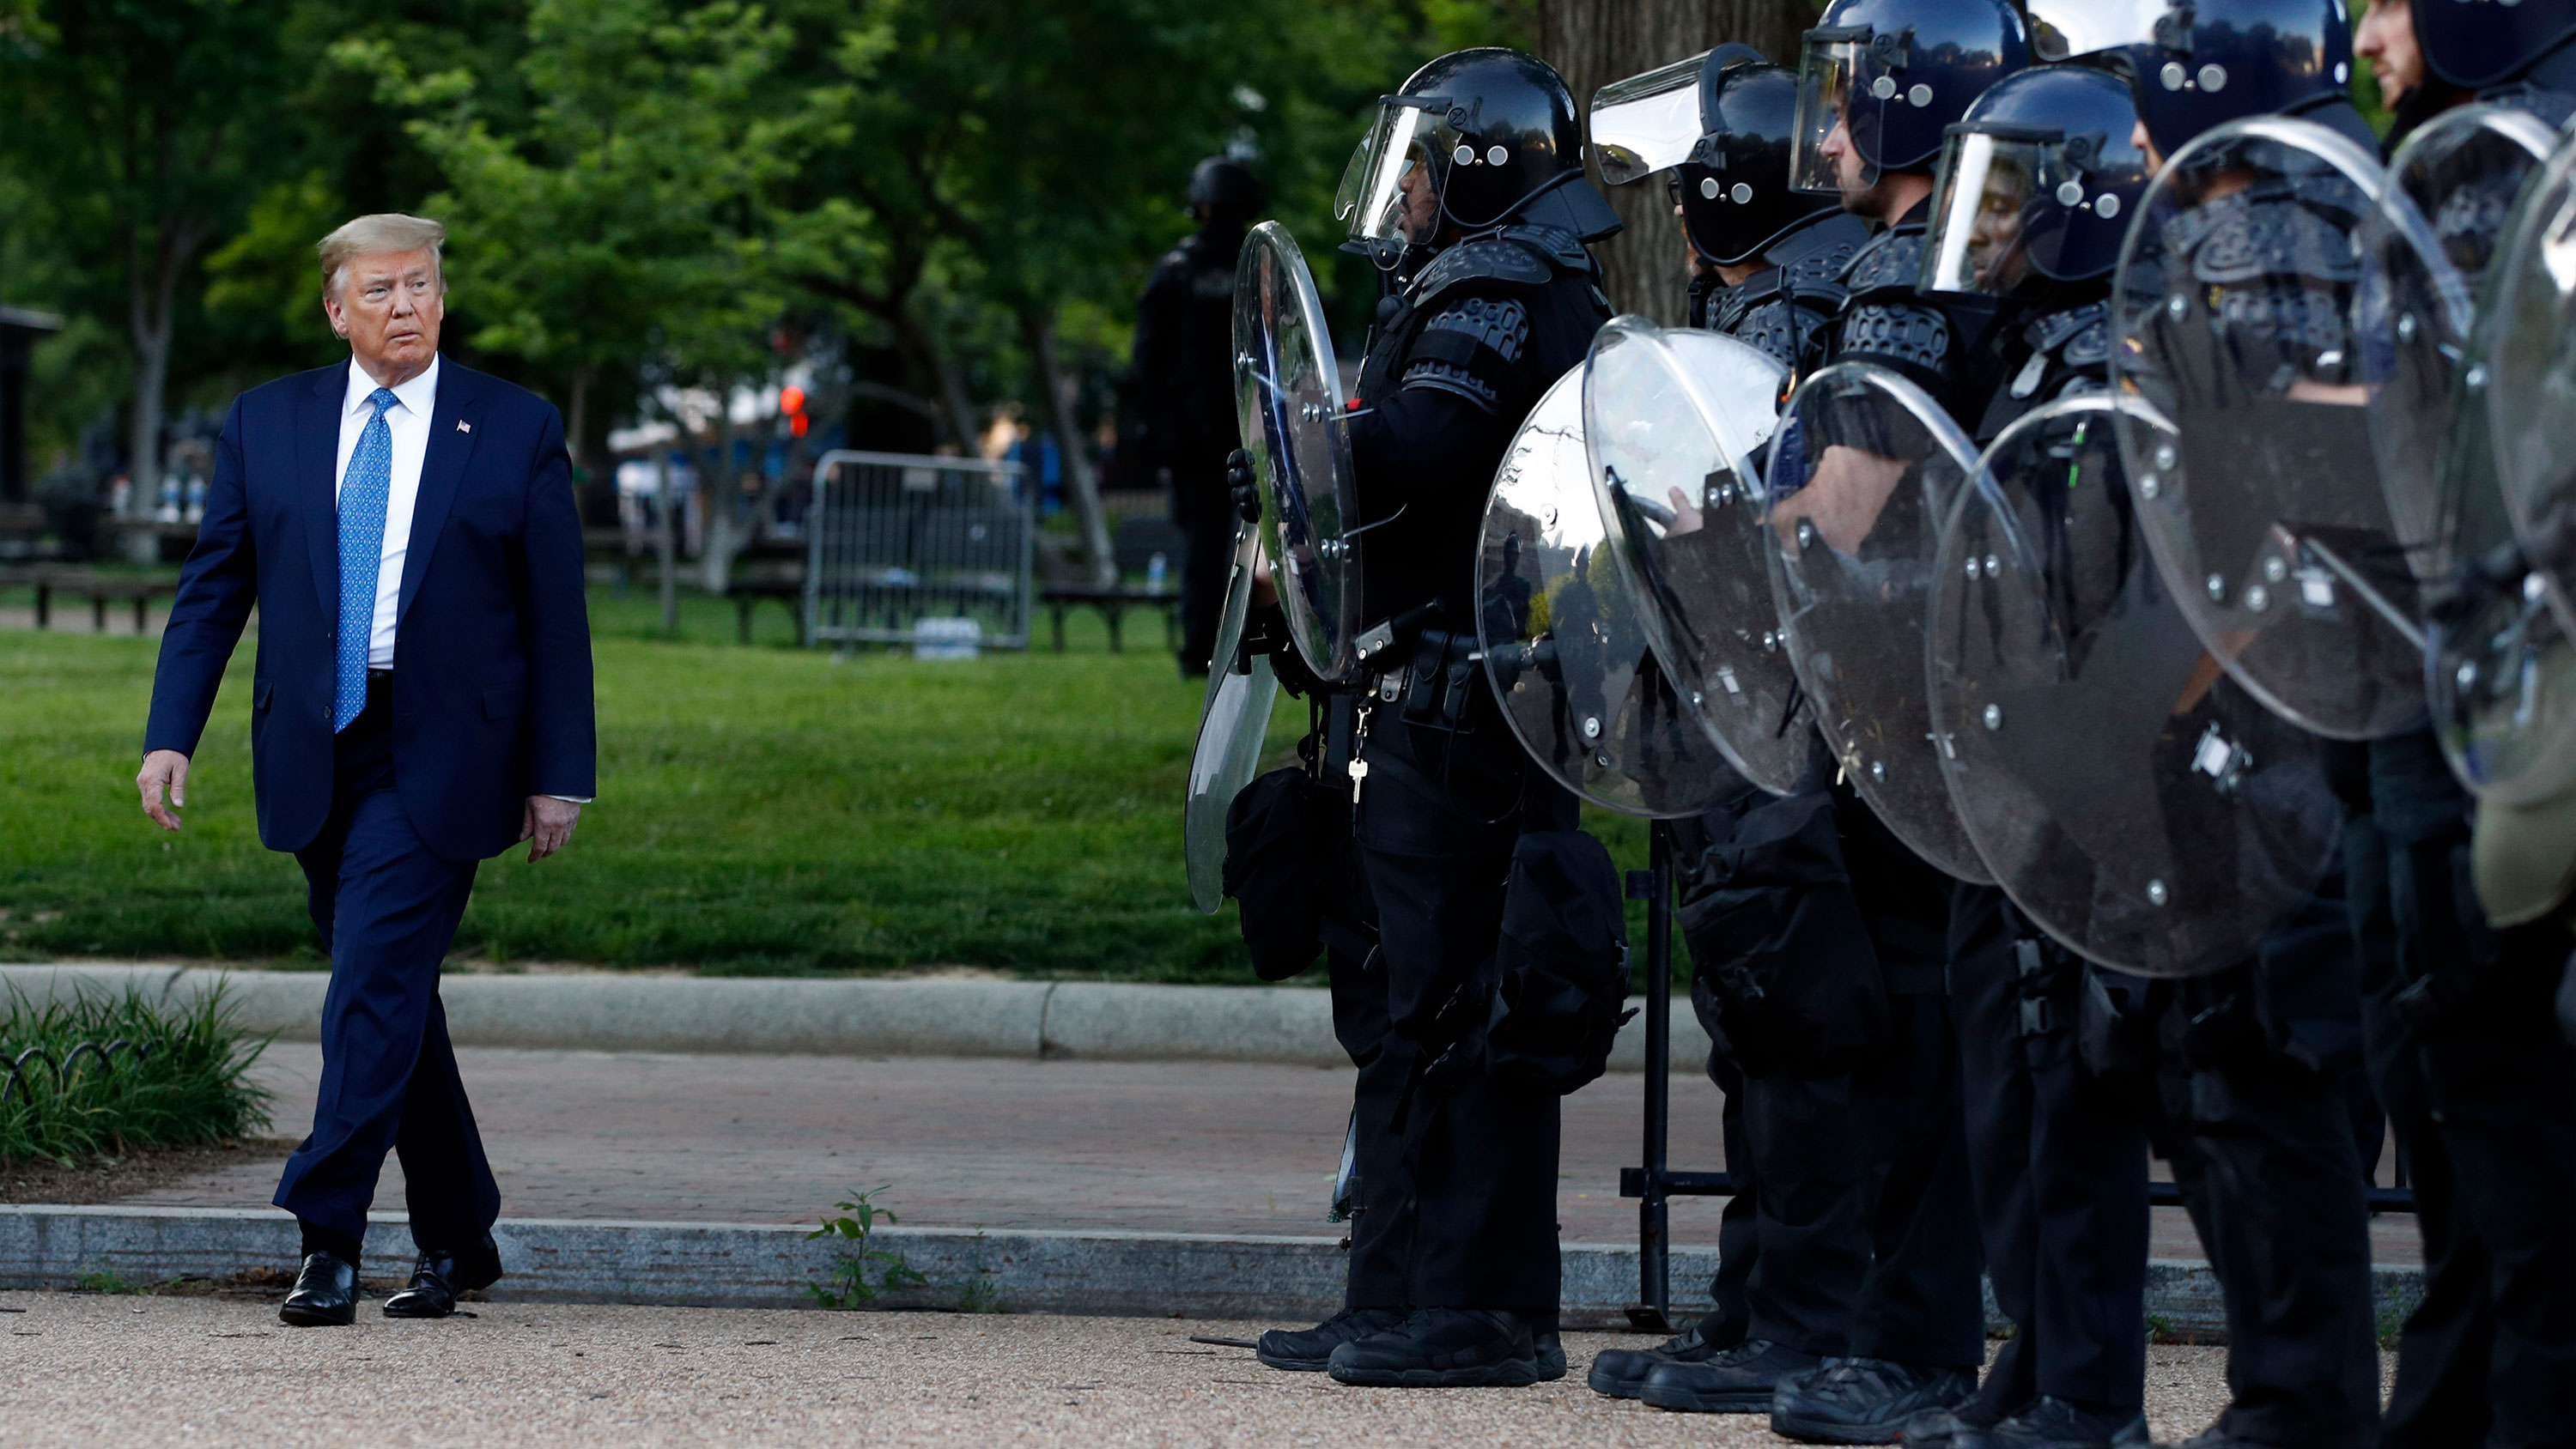 White House wanted 10k active duty troops to quell protesters